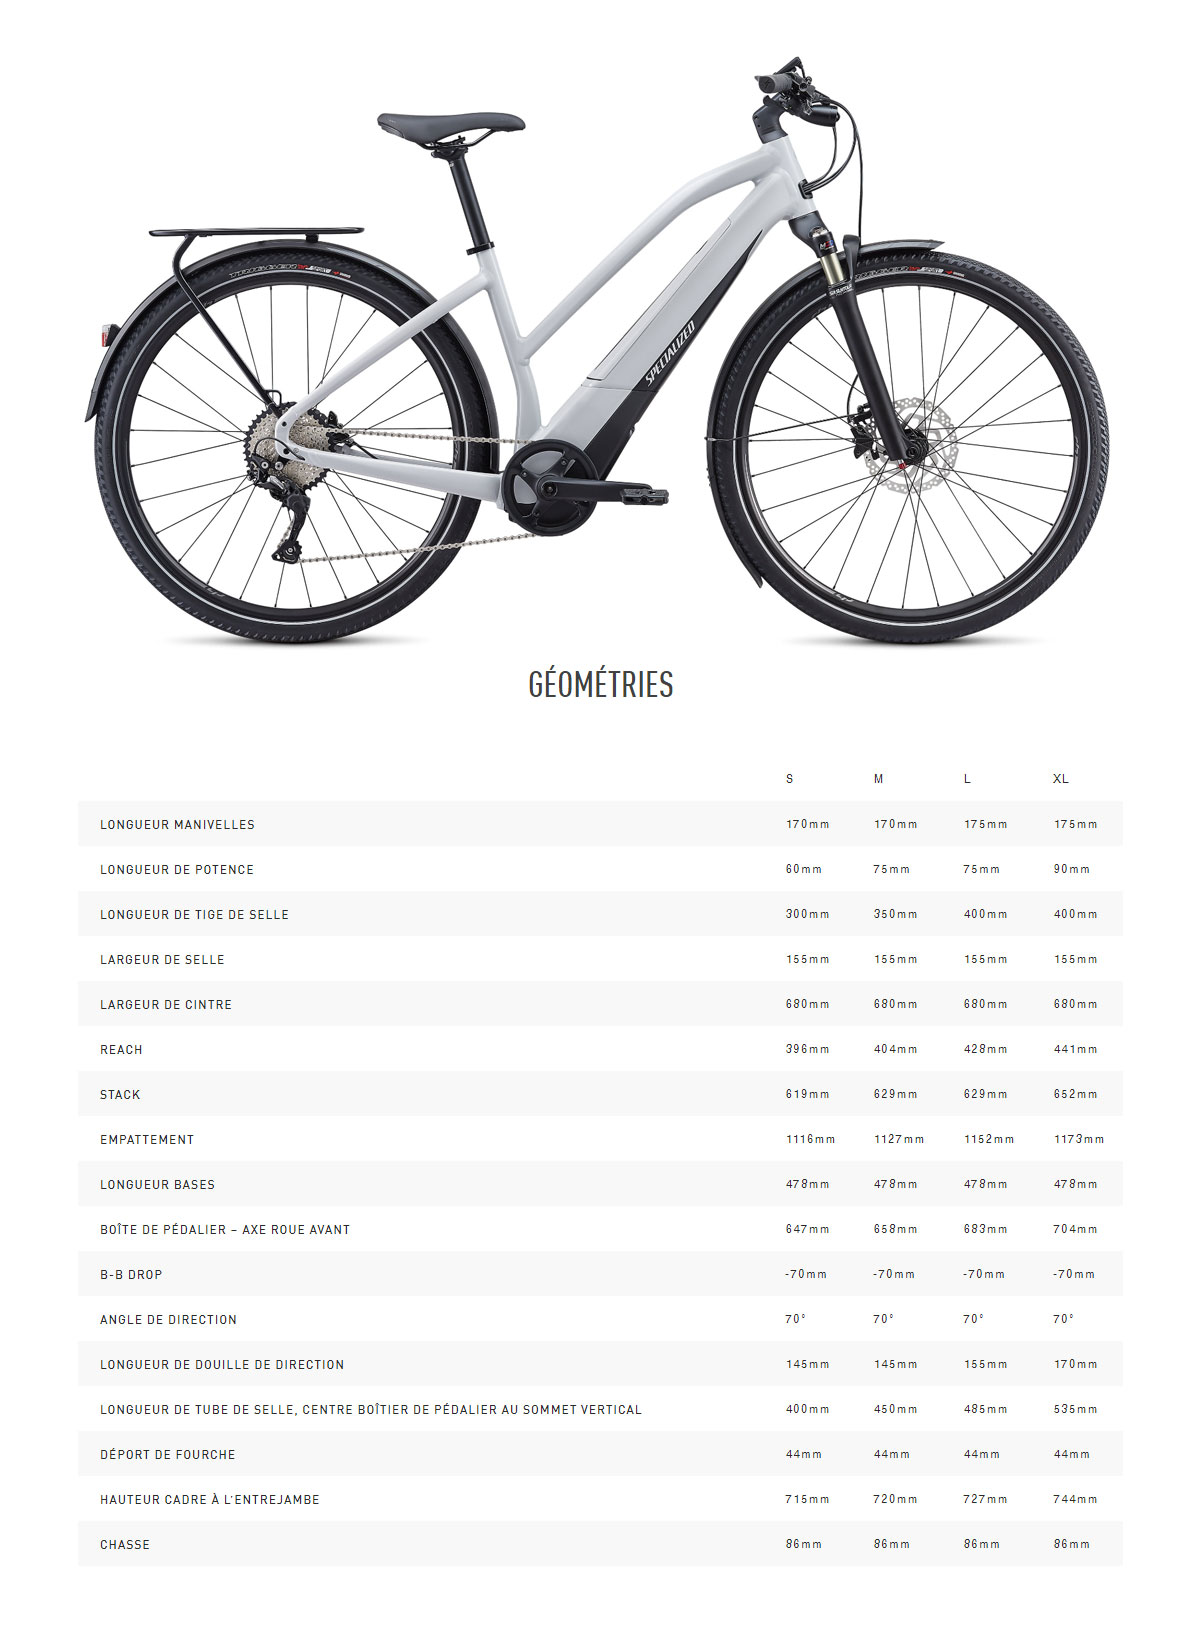 Vélo électrique Turbo Vodo 4.0 Step-Through Guide de taille